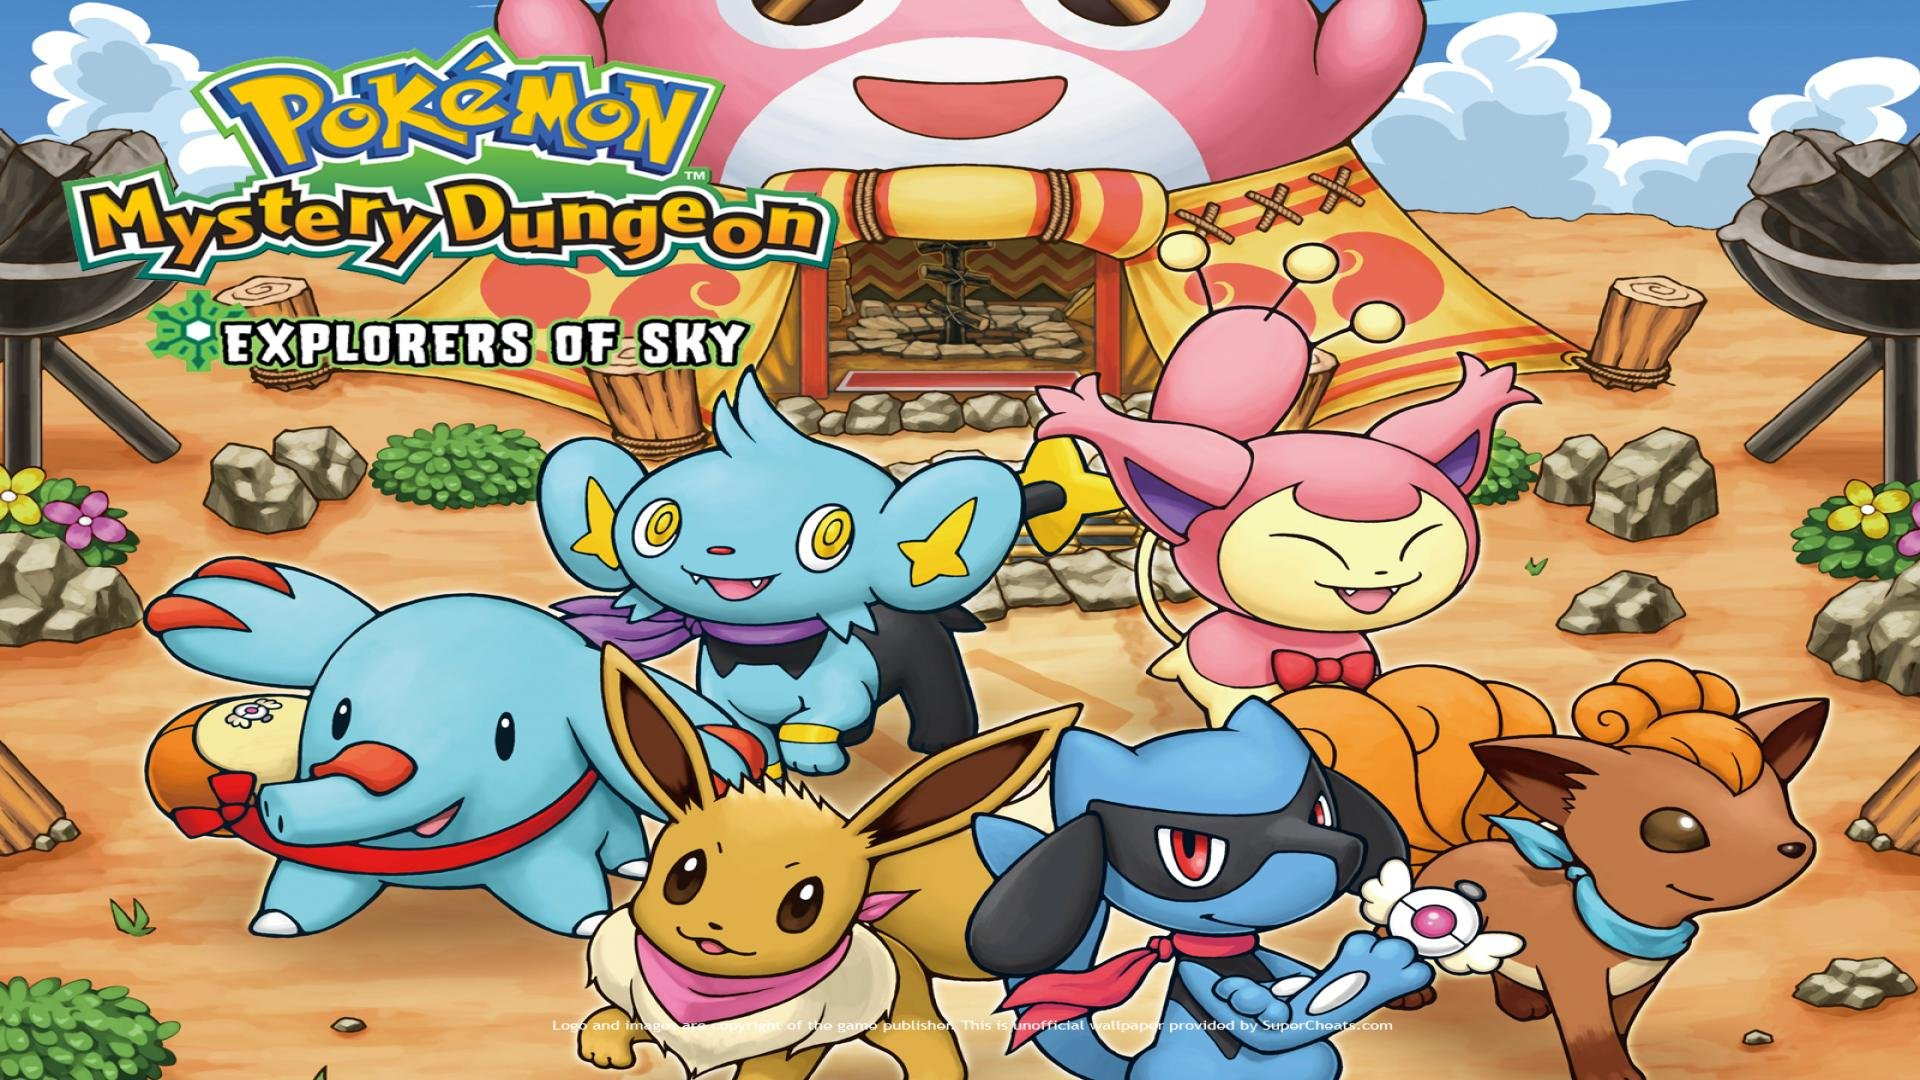 Pokemon Mystery Dungeon images PMD HD wallpaper and background 1920x1080